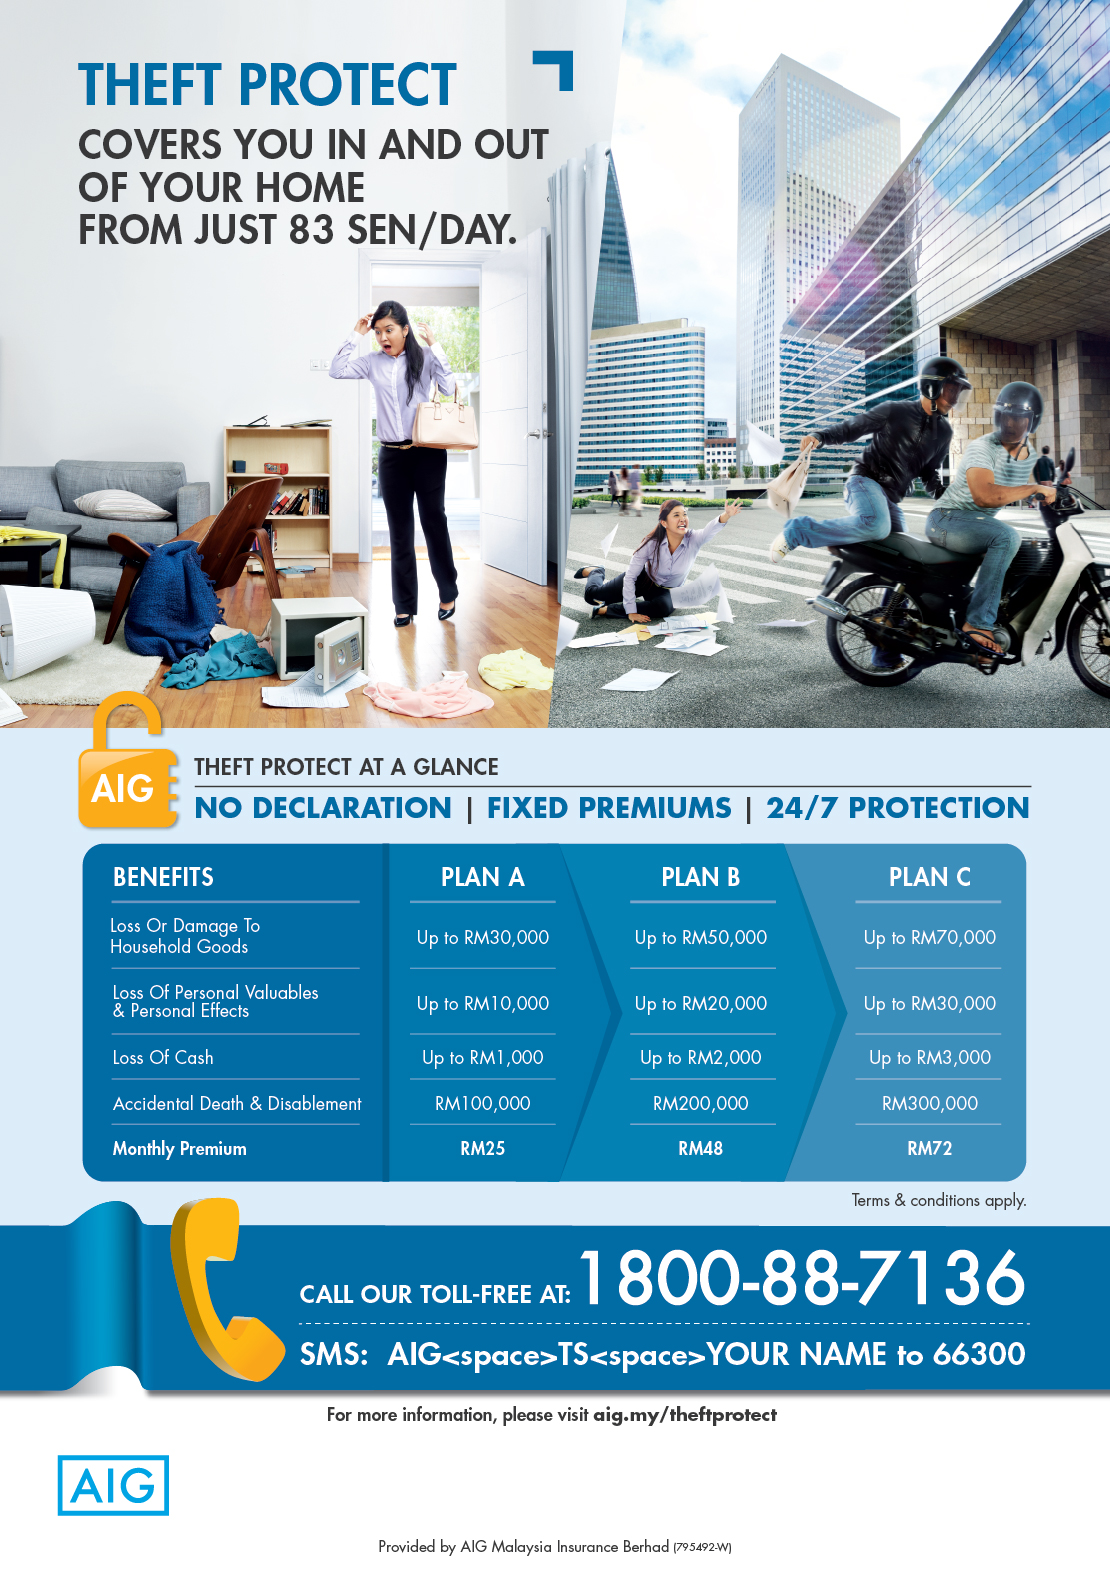 AIG Theft Protect